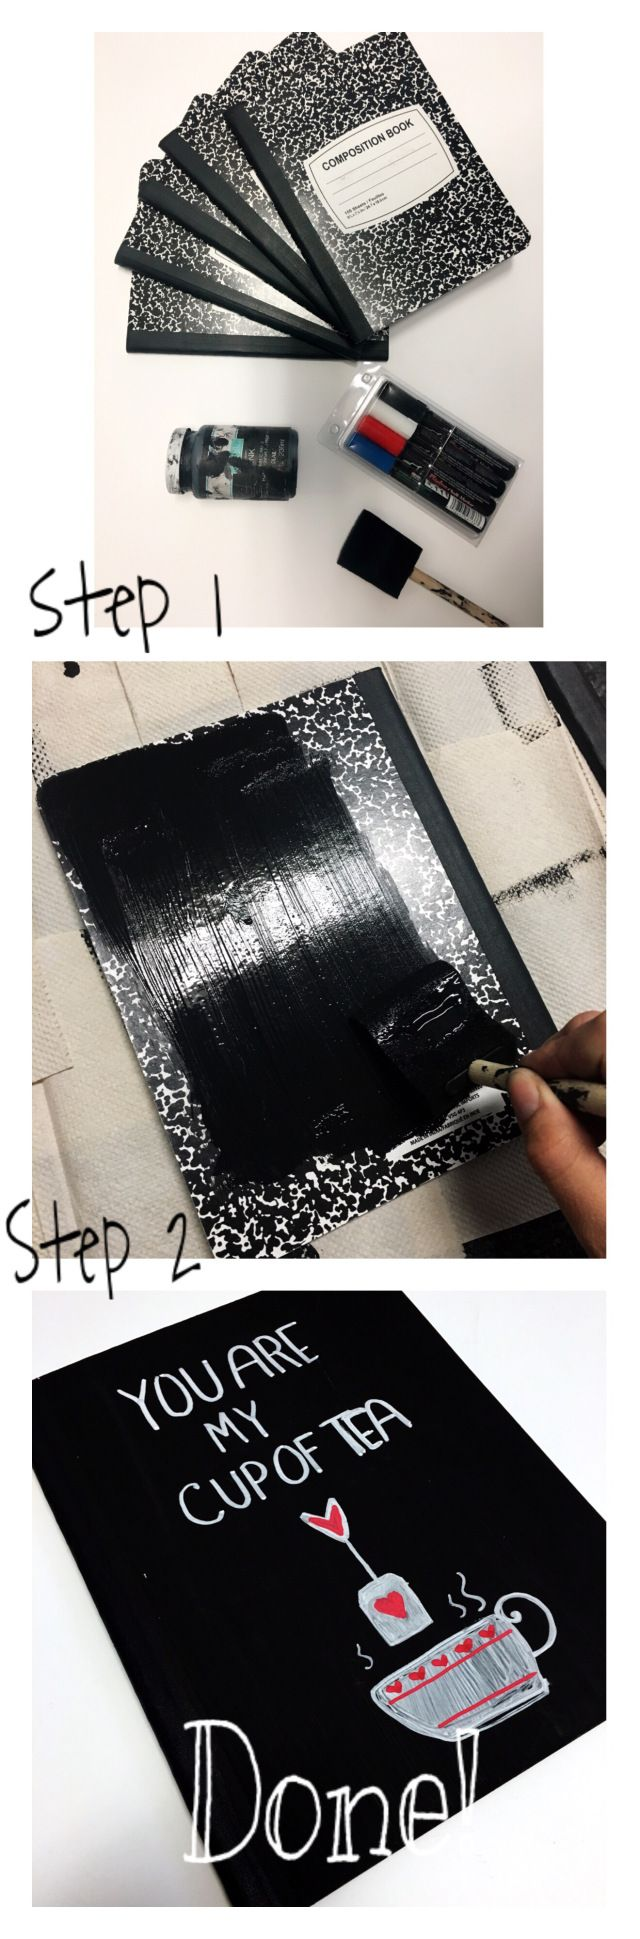 Diy notebook covers so your books and you will stand out at school - Cheap Ways To Decorate Your Notebooks For School Chalkboard Paint